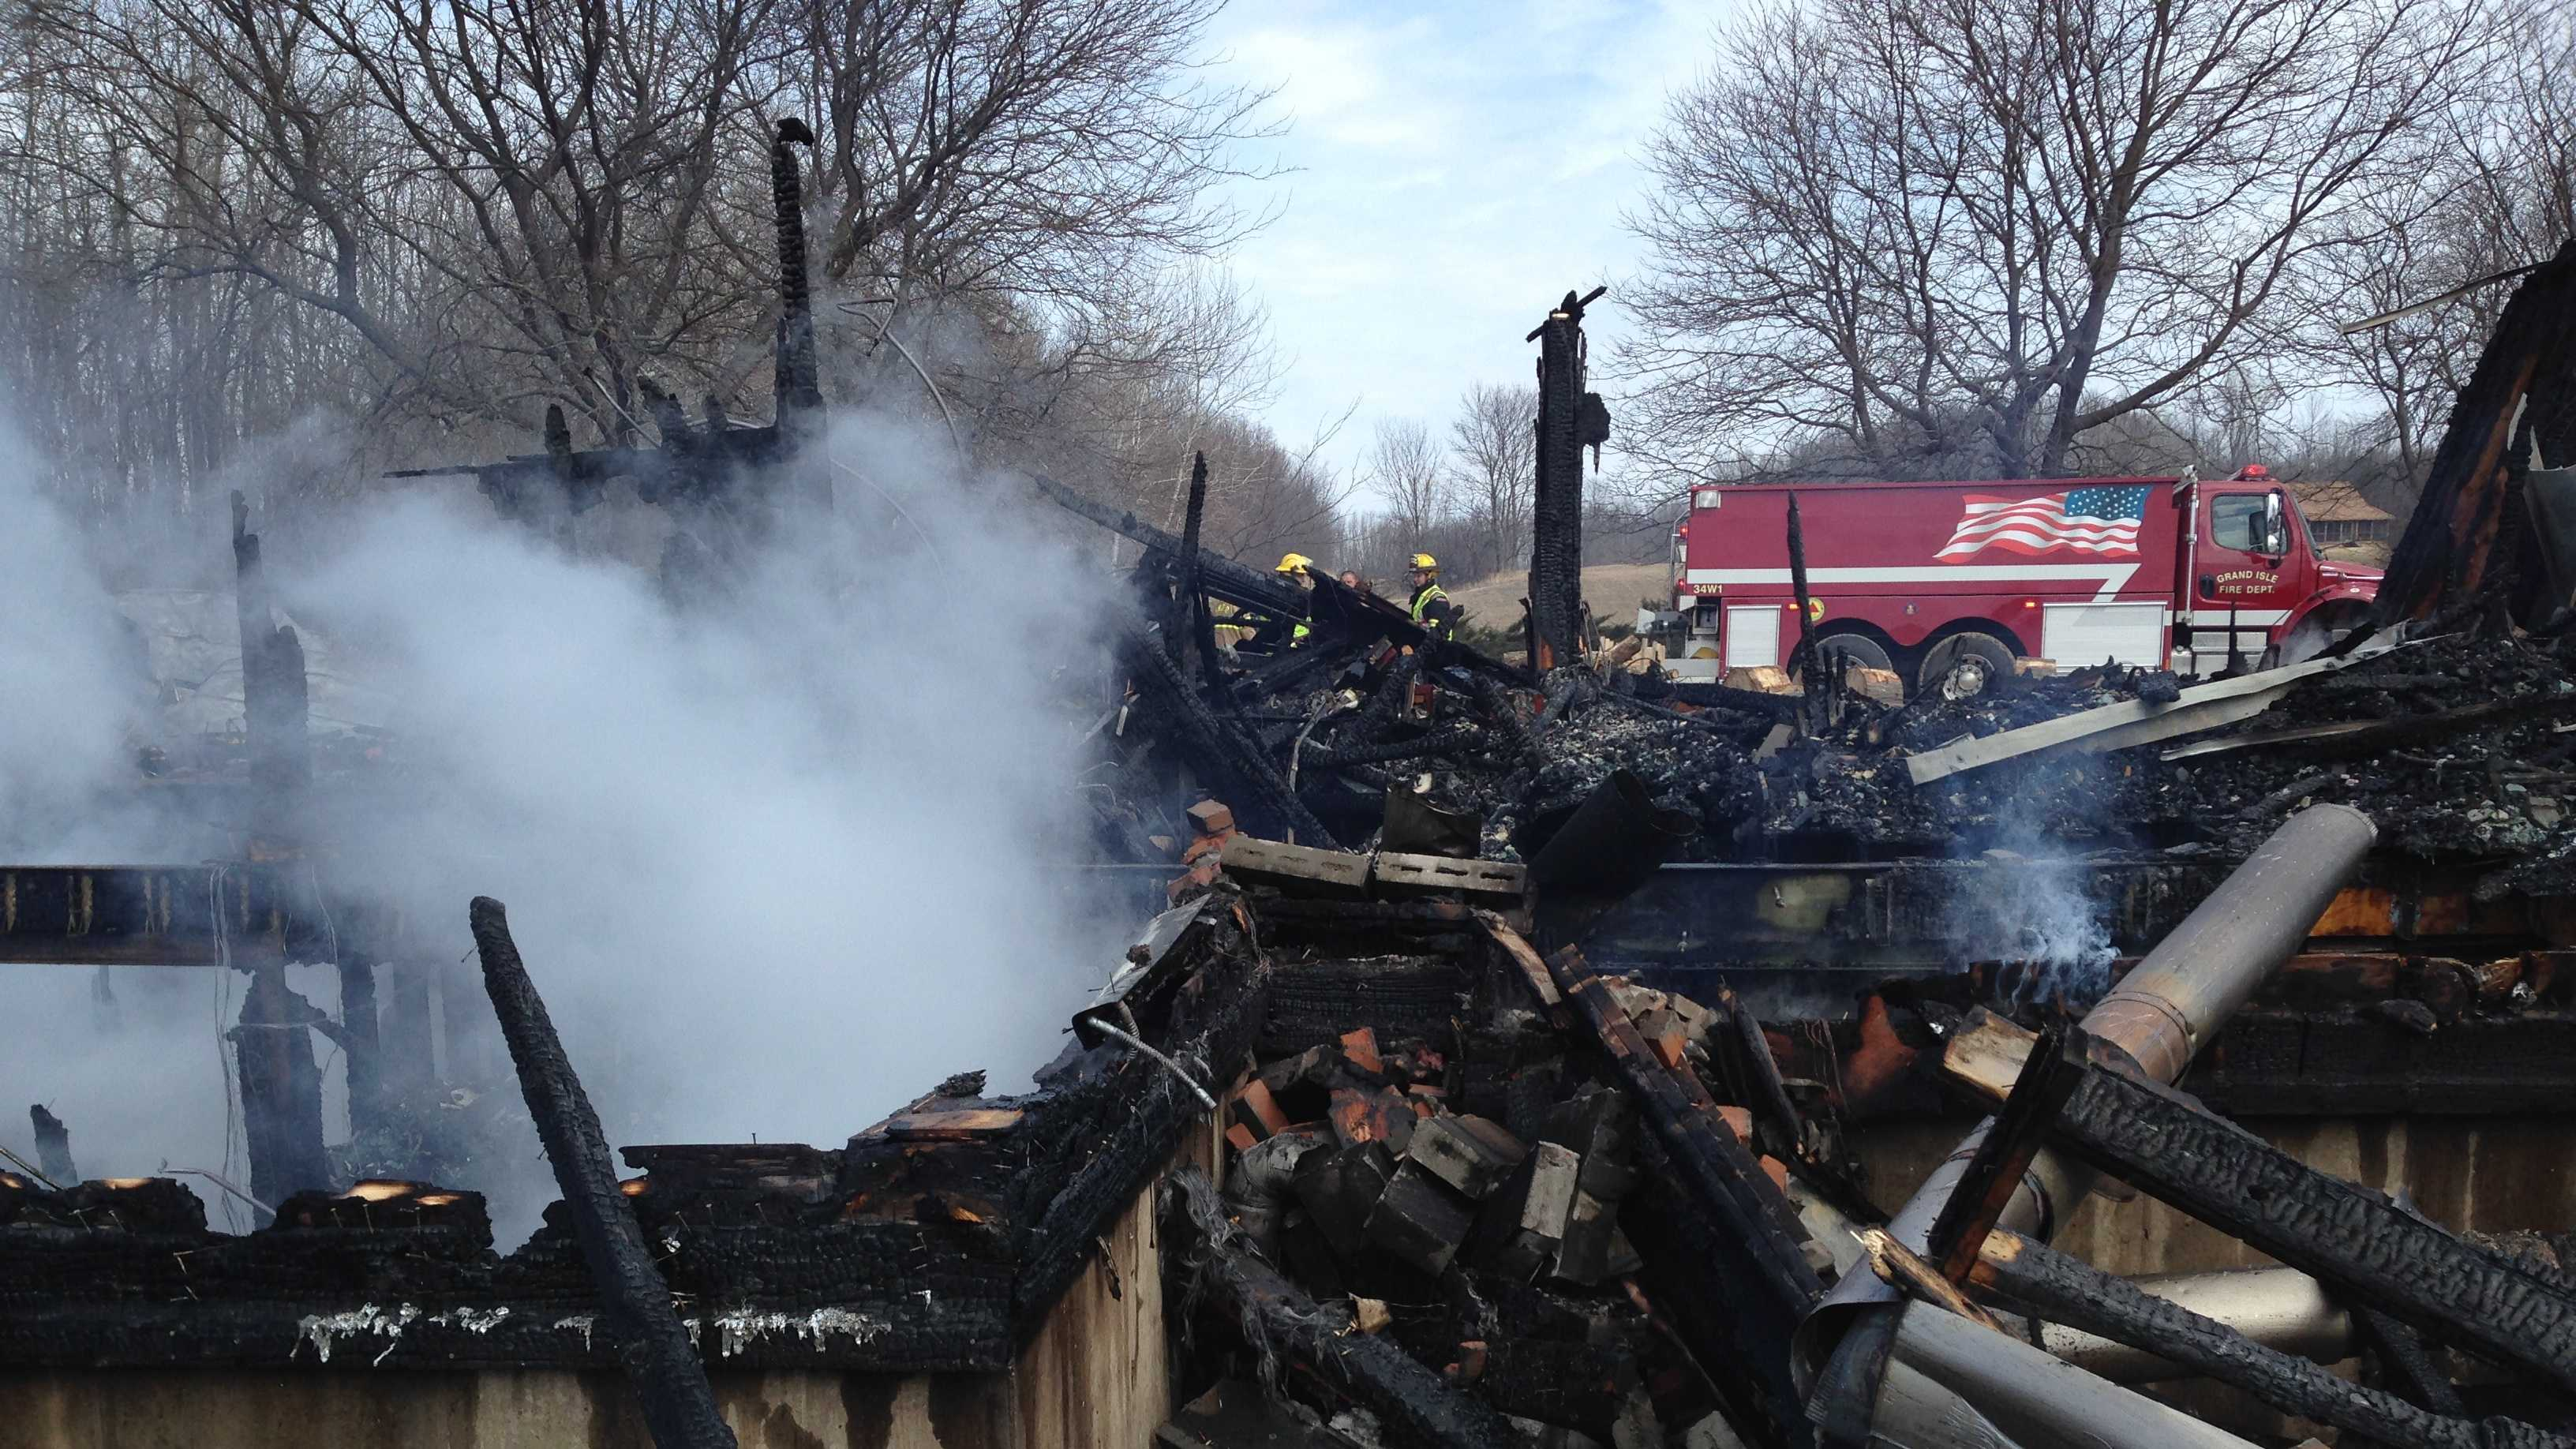 Smoke rises from the ashes of a South Hero home destroyed April 9, 2014 by fire.